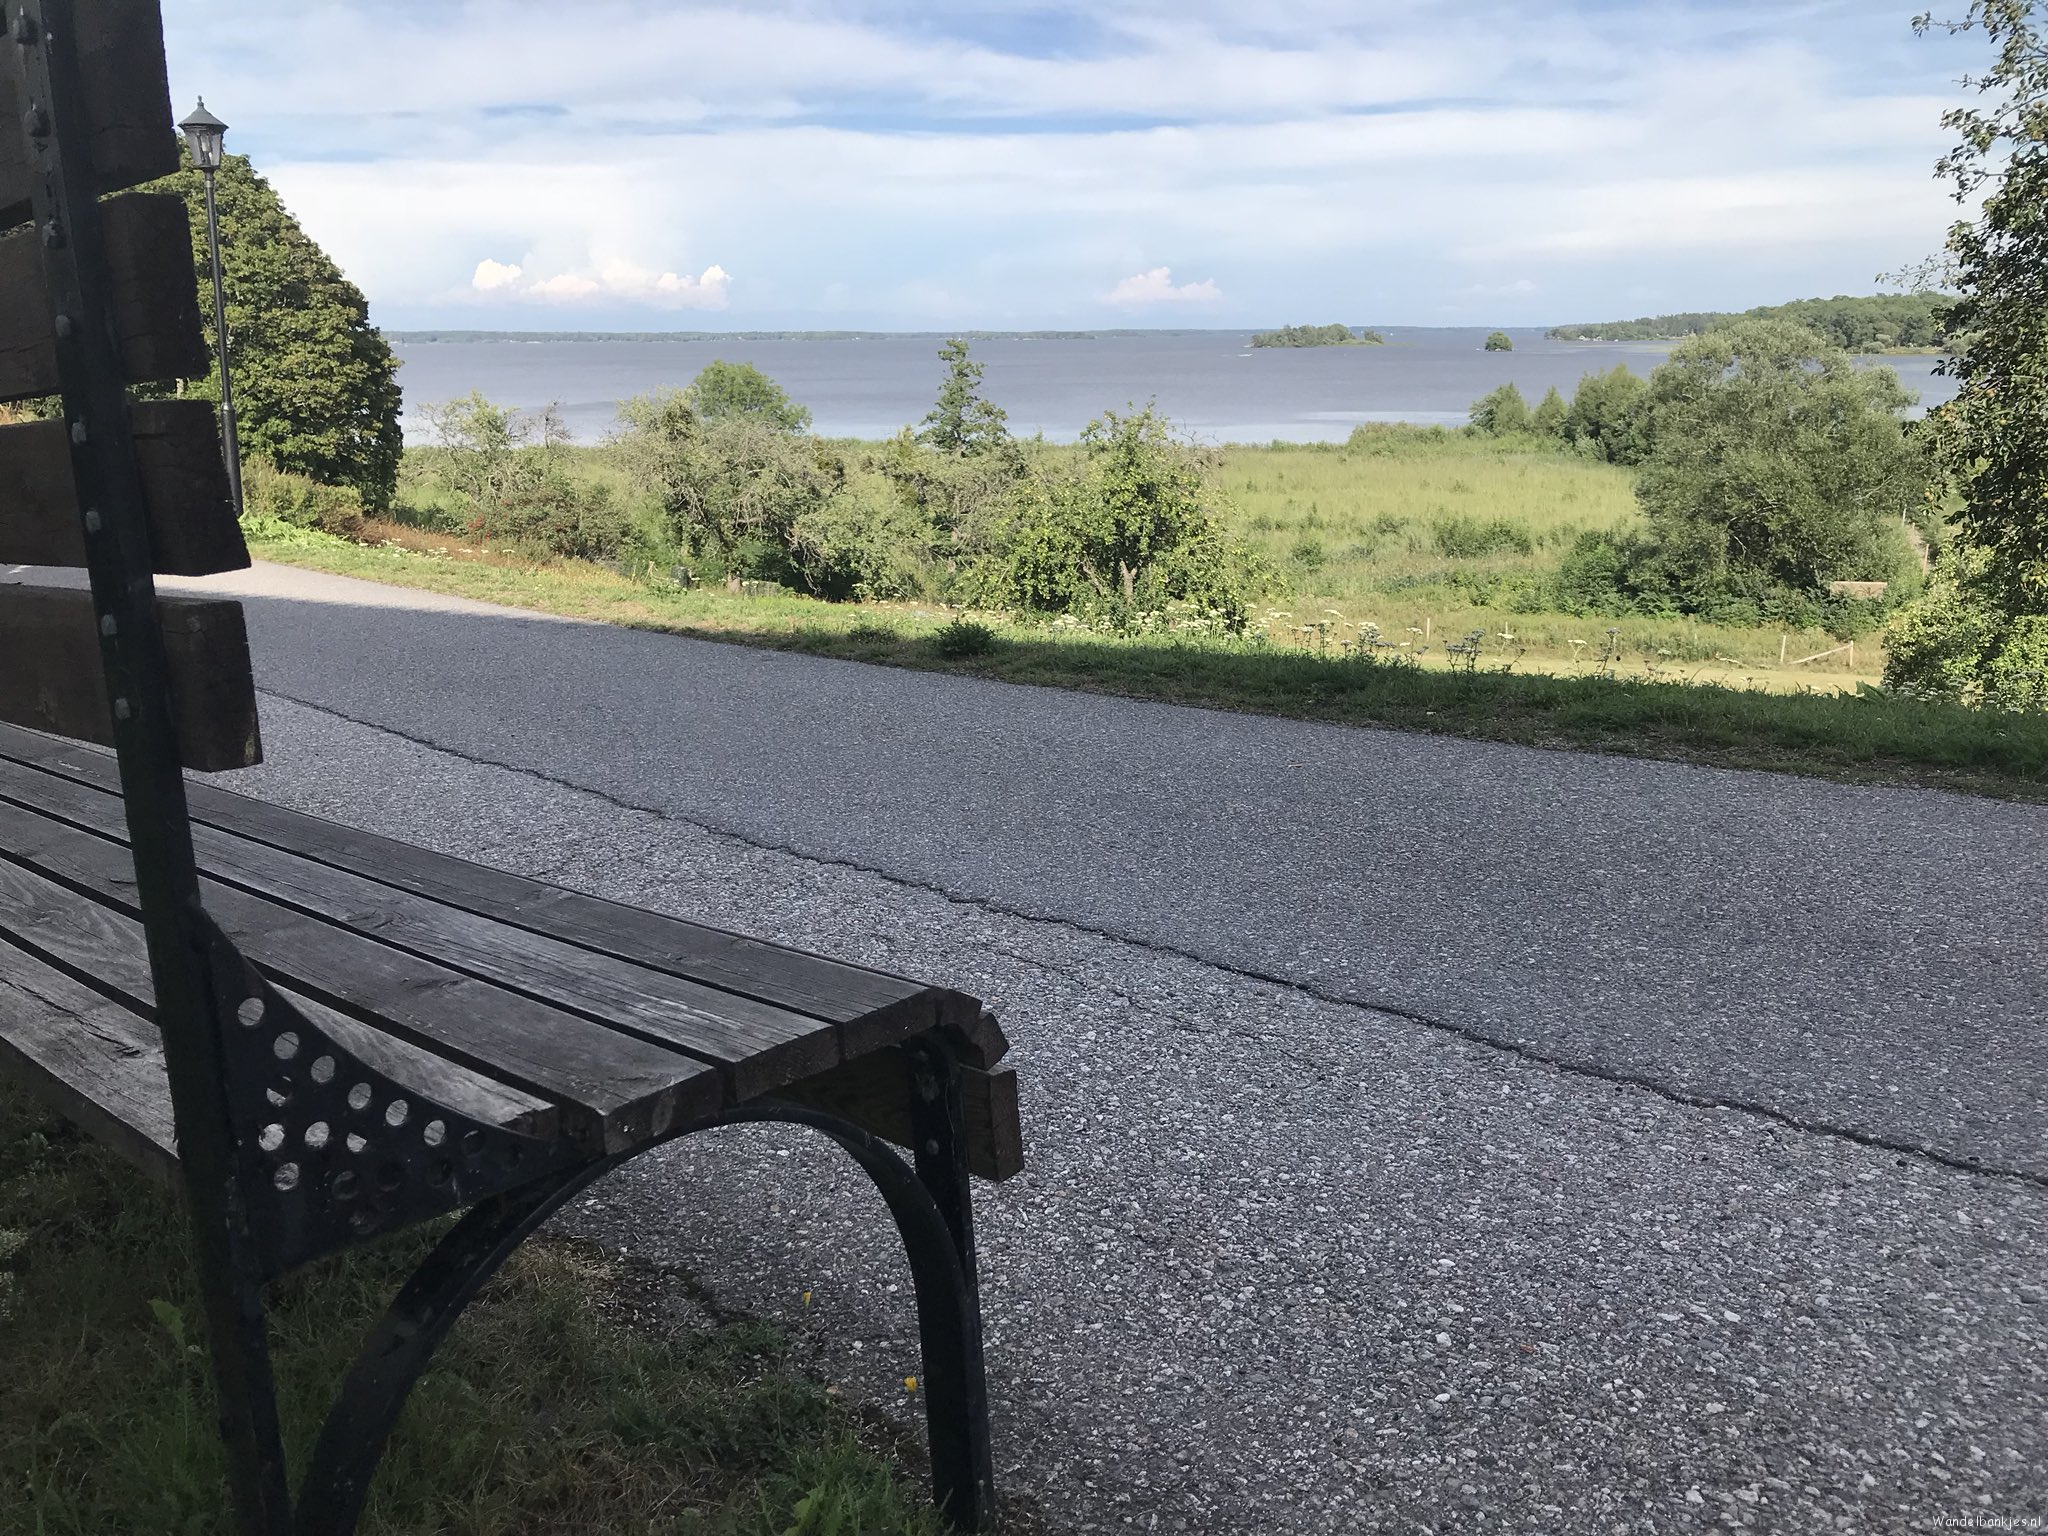 rt-dujo070-walking-benches-walkersbenches-a-walking-bench-with-a view-on-the-lake-lake-in-sweden-https-t-co-kfvmfslyb0